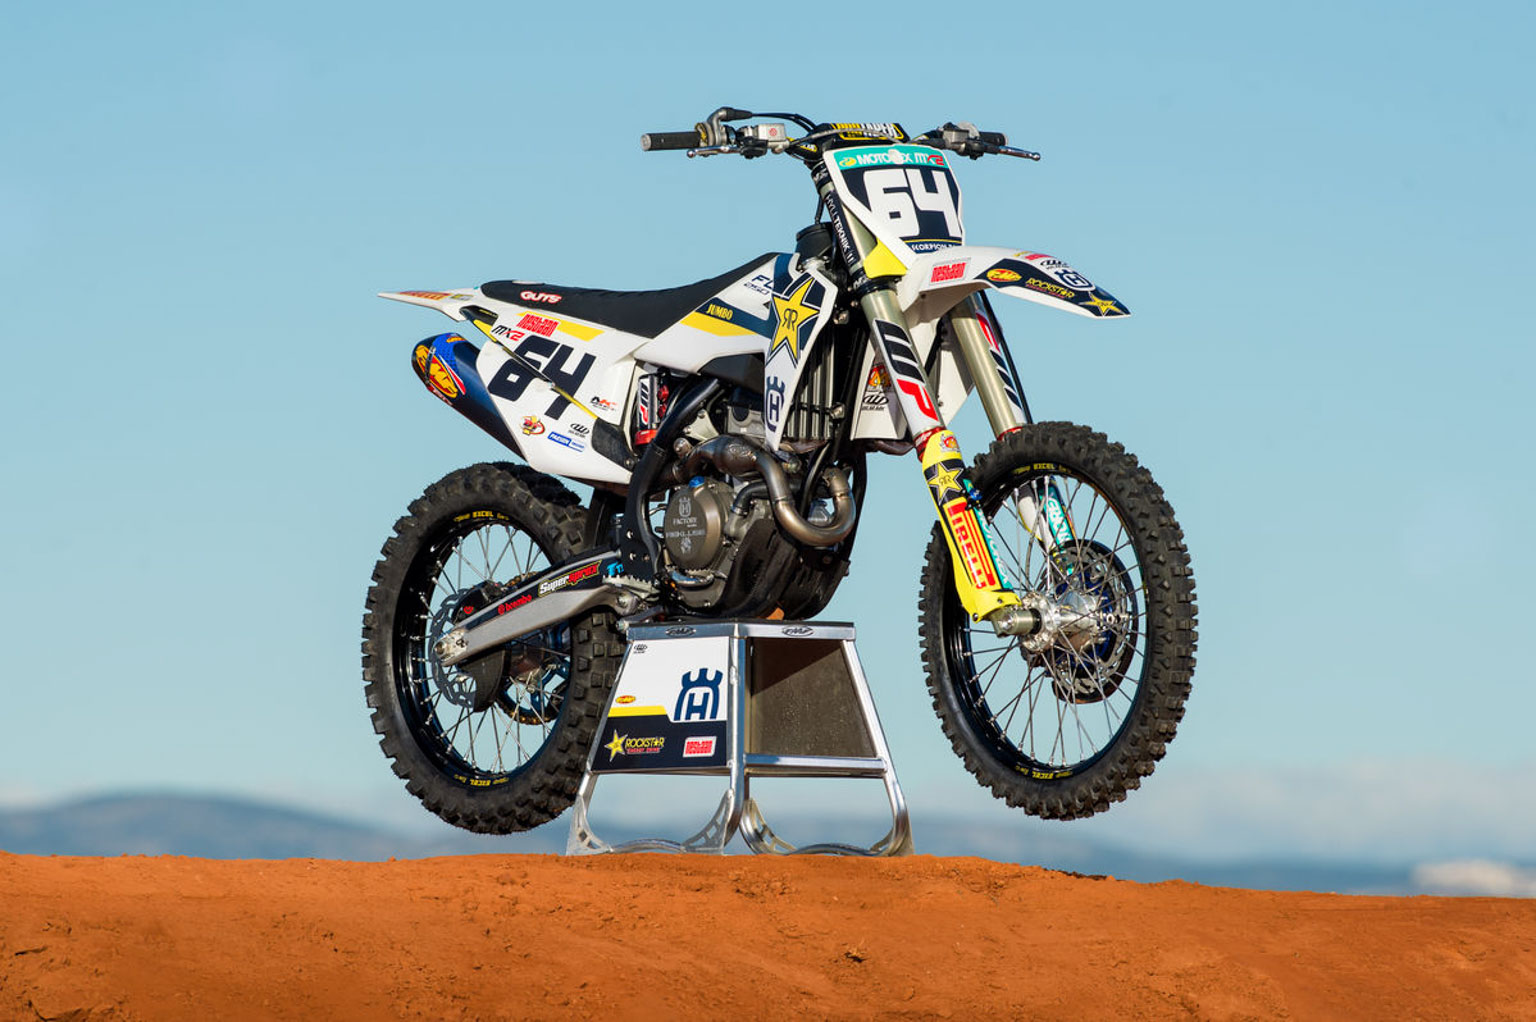 42340_Covington_Bike_Rockstar Energy Husqvarna MX2 Factory Racing_shotbybavo_3